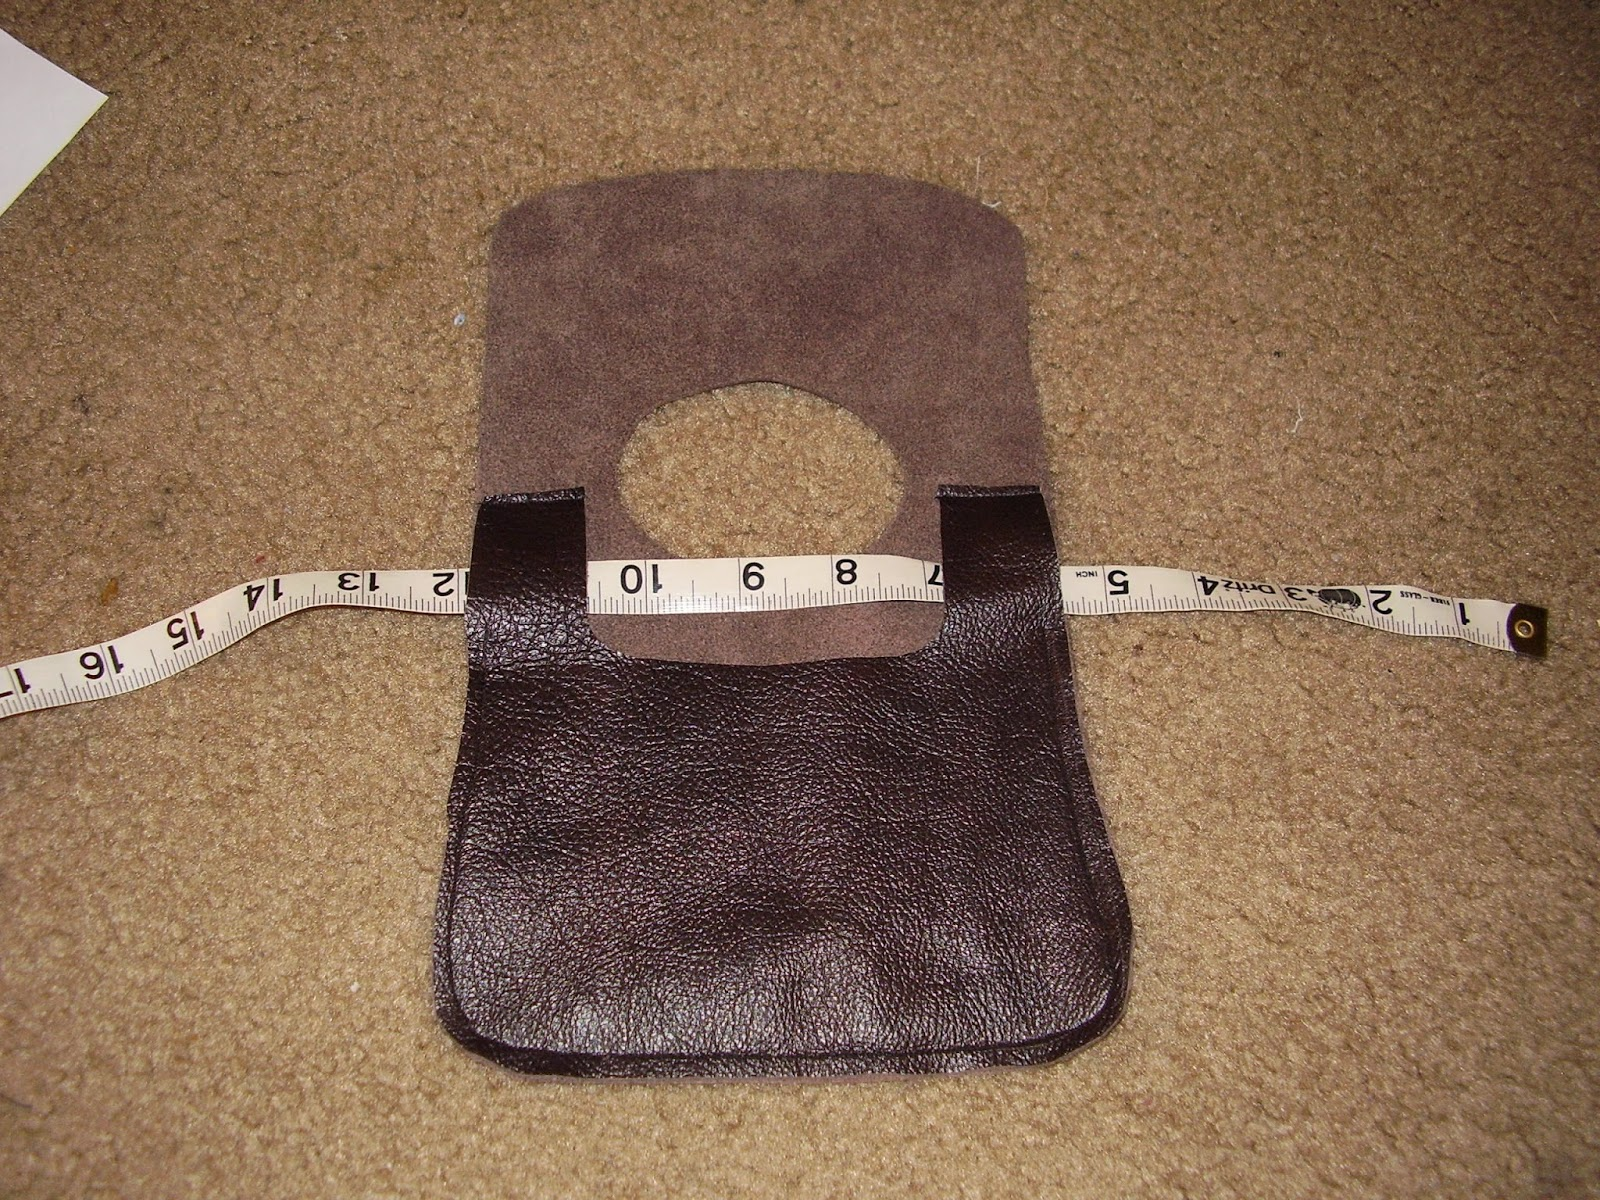 Belt pouch body stitched together.